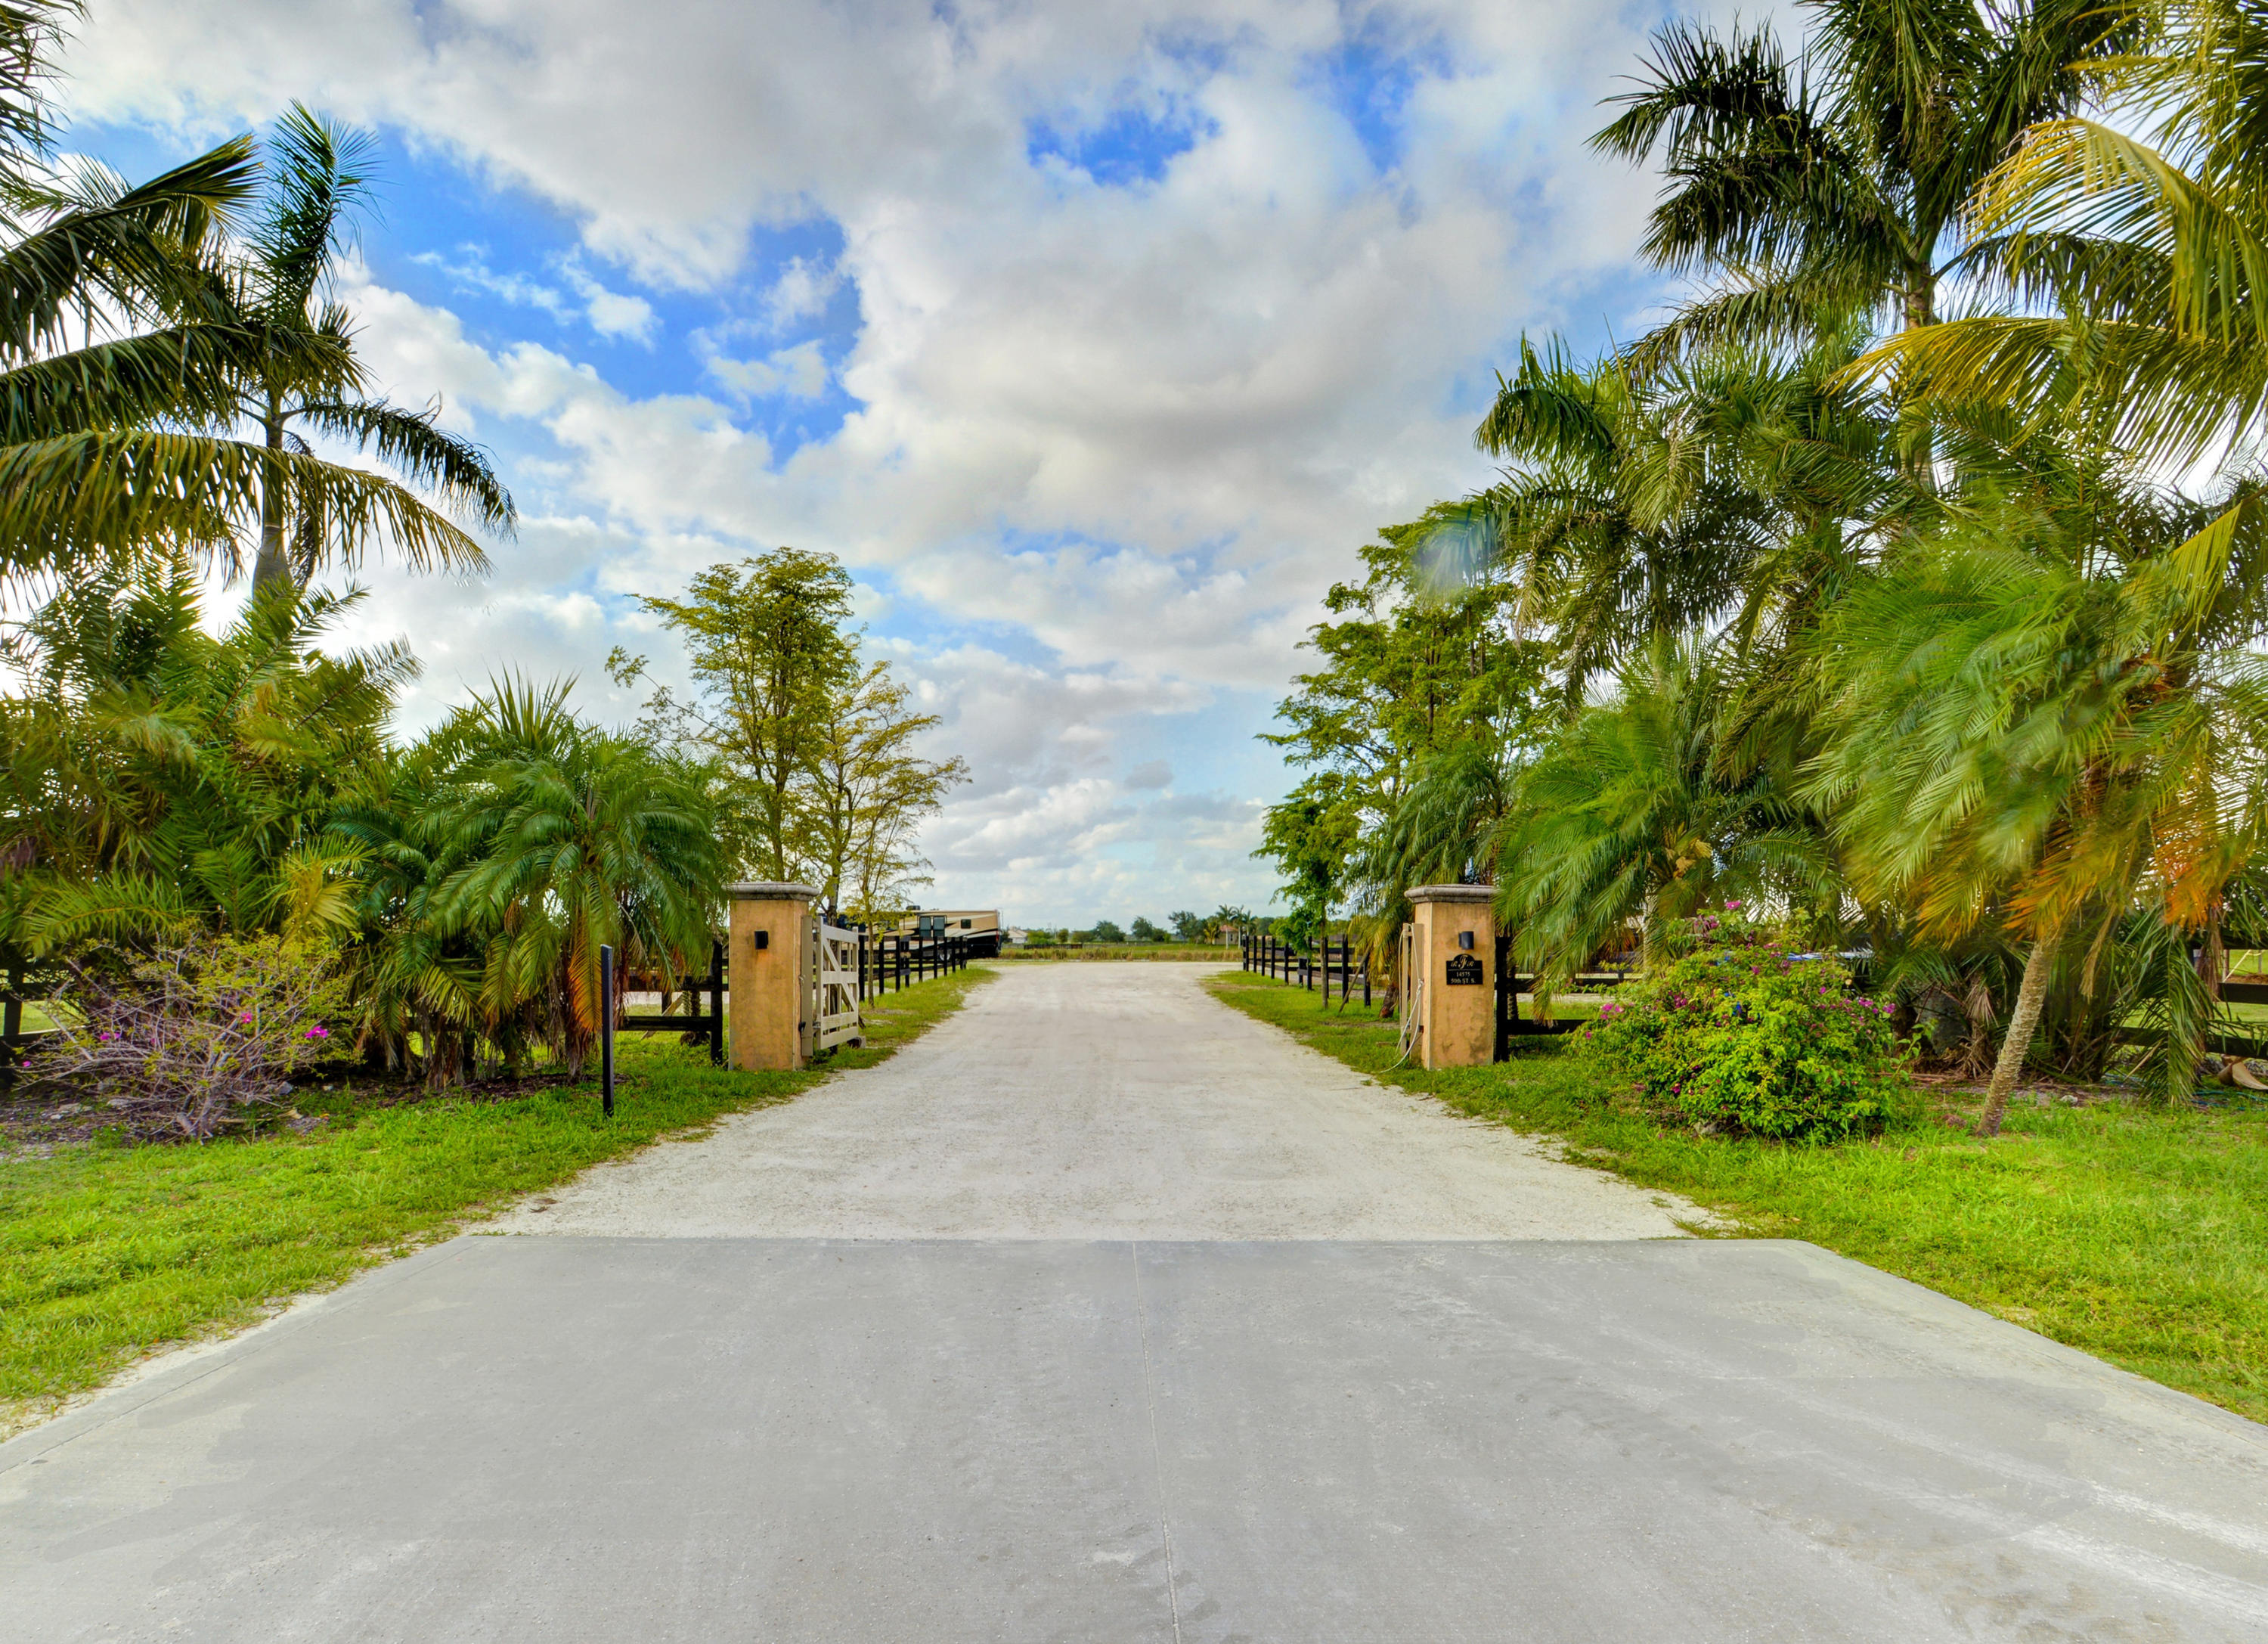 14575 50th Street, Wellington, Florida 33414, 4 Bedrooms Bedrooms, ,4 BathroomsBathrooms,Single Family,For Sale,Palm Beach Point East,50th,RX-10505444